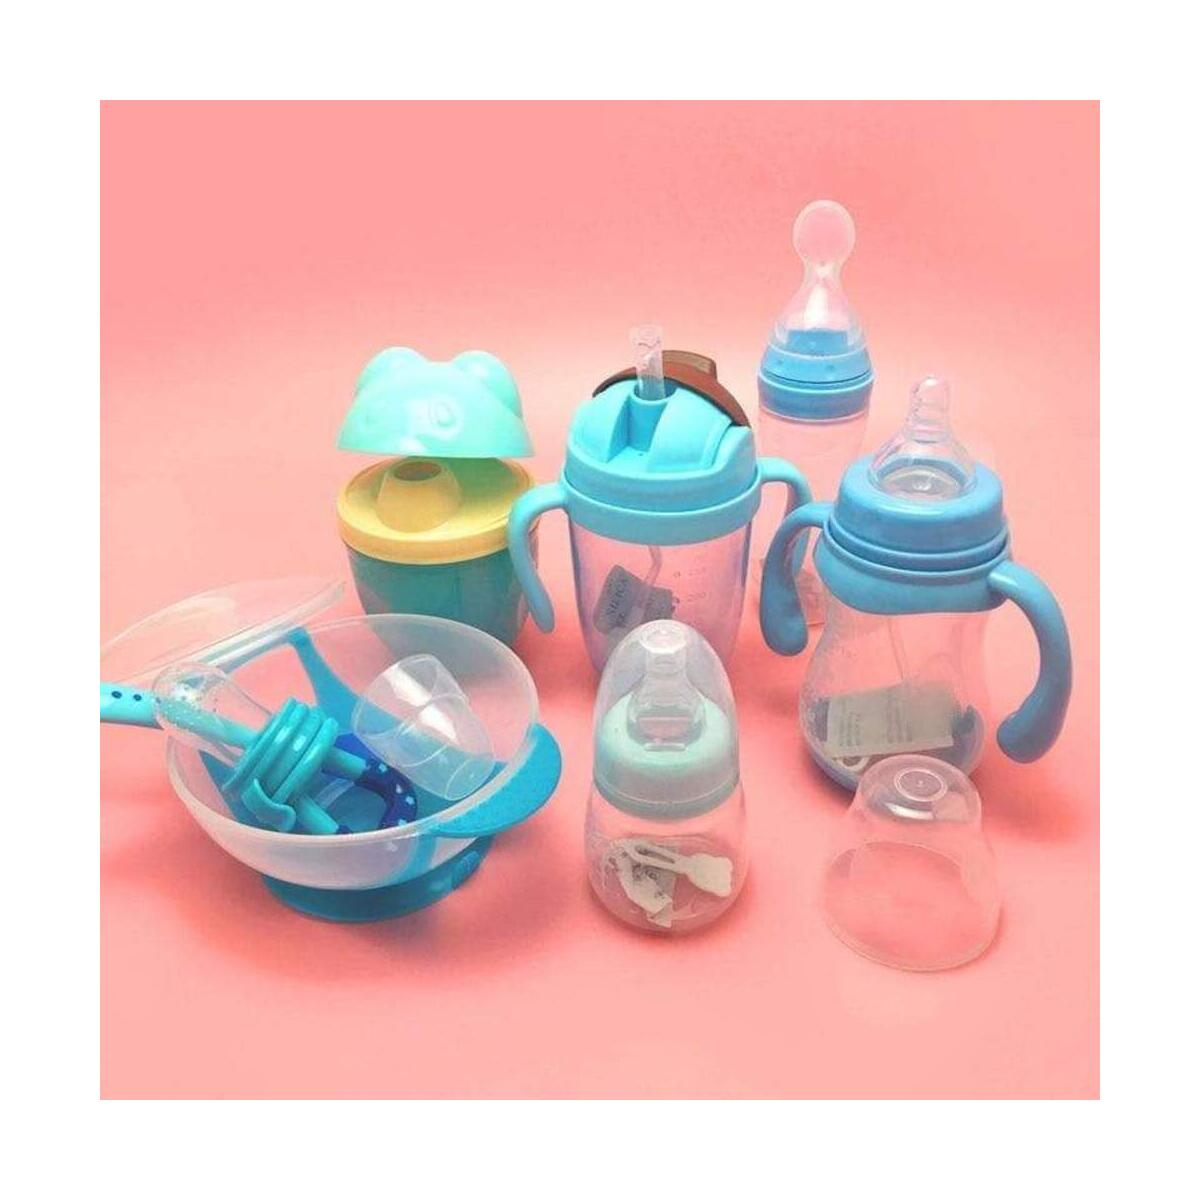 7 in 1 Baby Suction Silicone Baby Feeding Set  BPA-Free, First Feeding